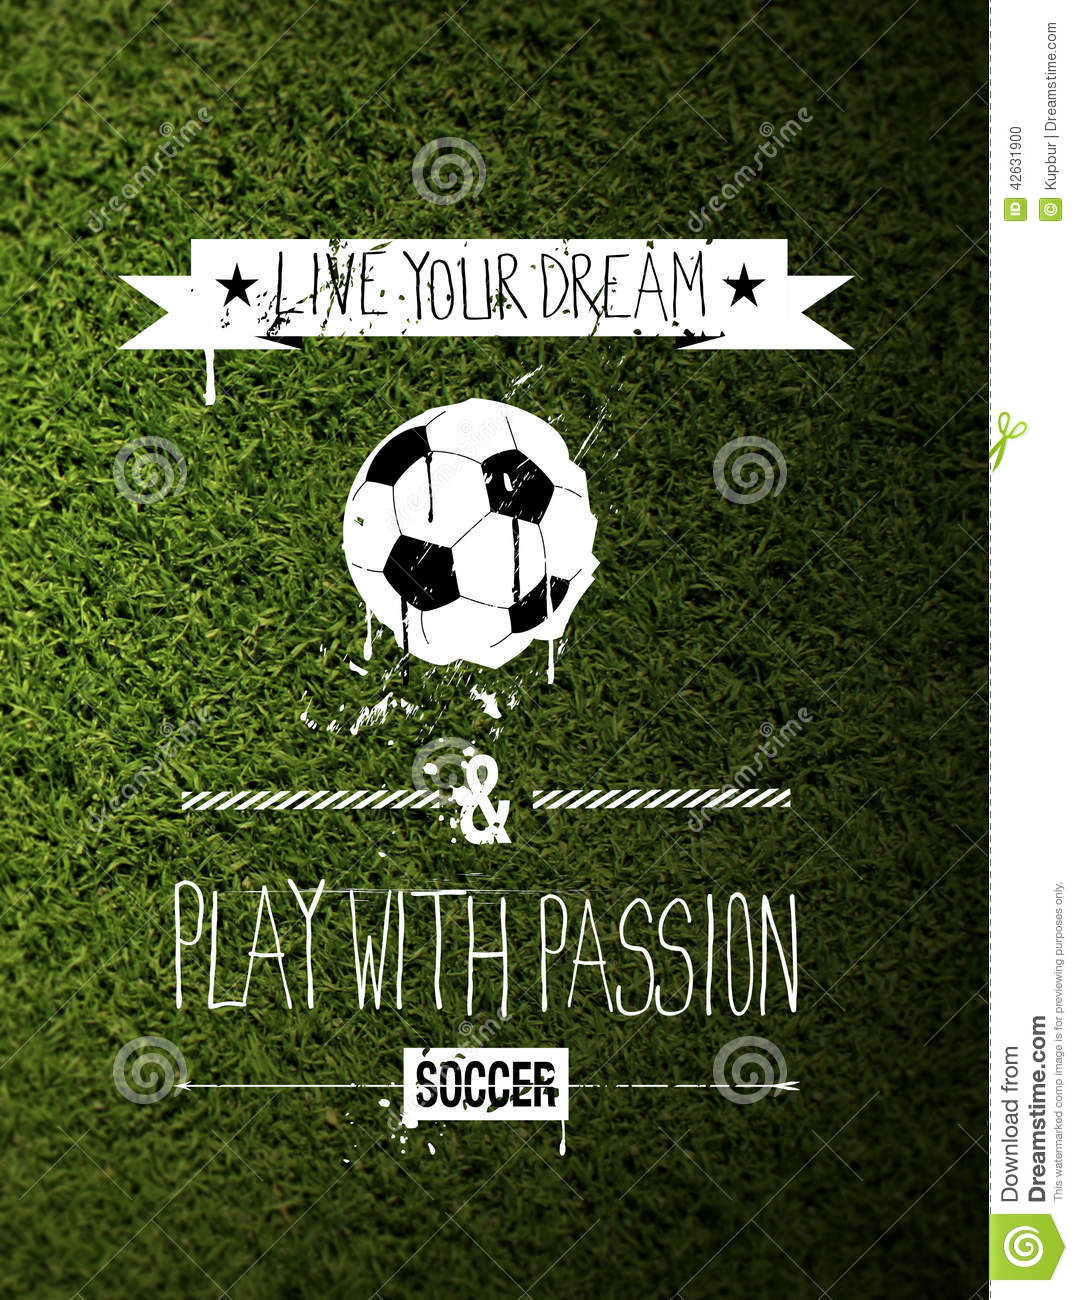 Soccer Quote Soccer Typography Quote On Grass Stock Photo  Image 42631900